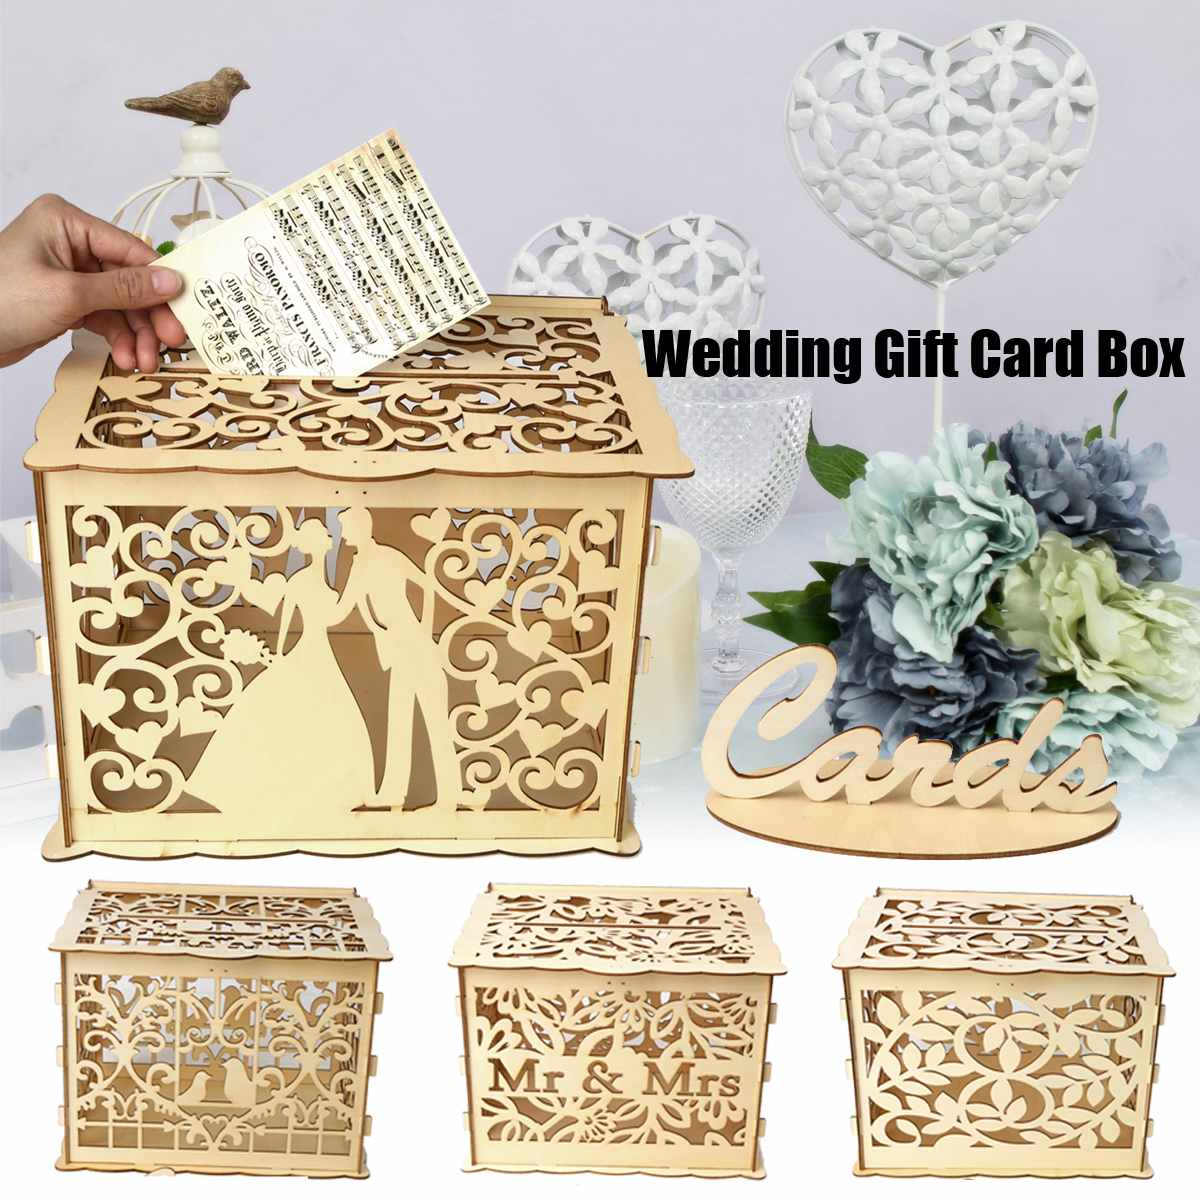 14 Types Diy Wedding Gift Card Box Wooden Money Box With Lock And Key Beautiful Wedding Decoration Supplies For Birthday Party Hot Sale 11 11